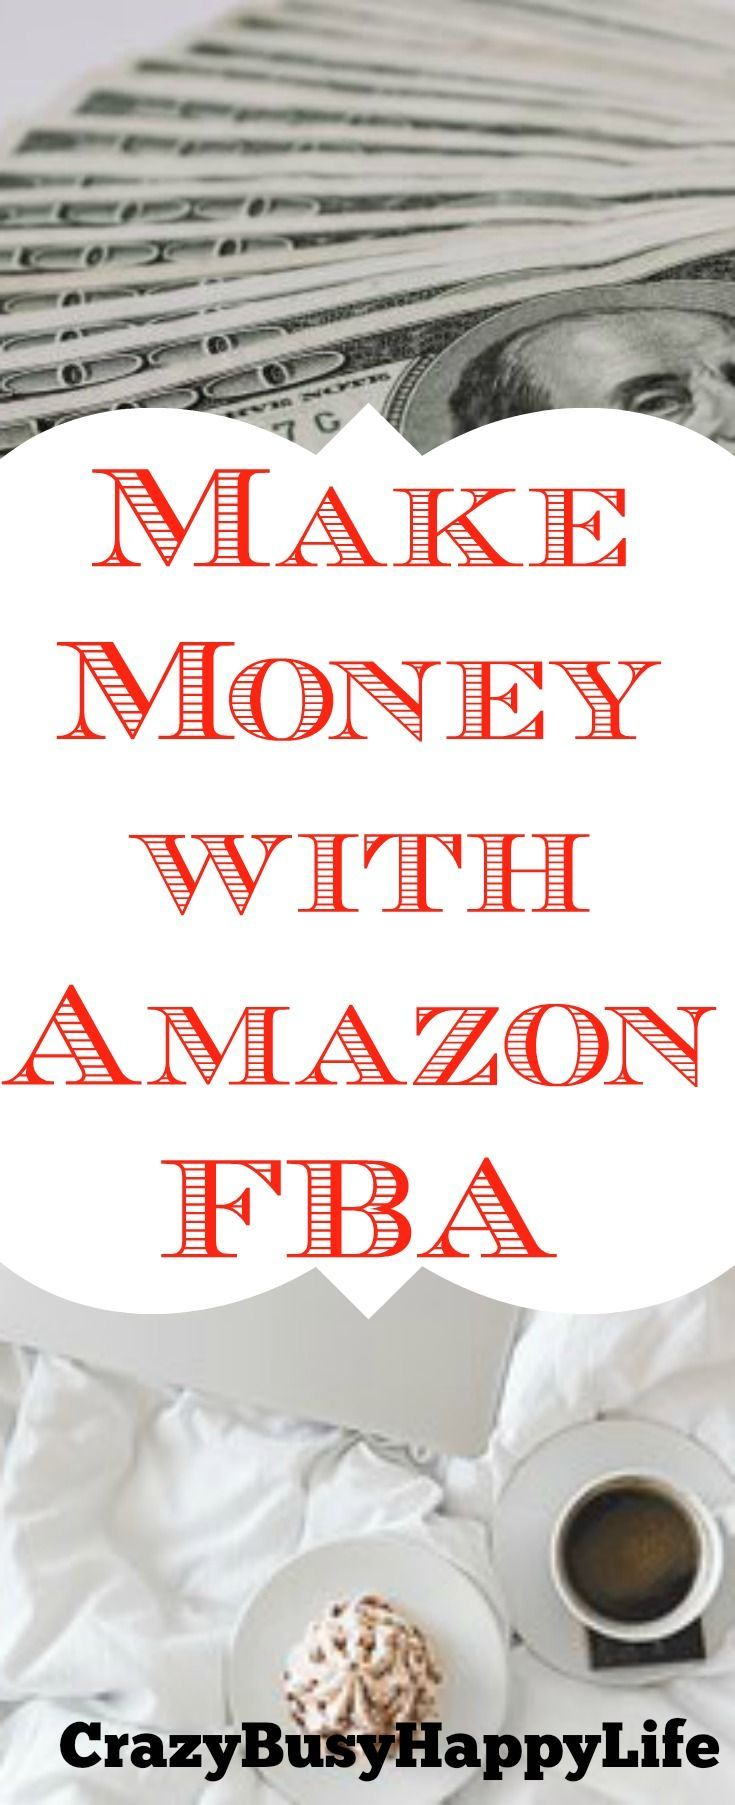 best ideas about internet jobs make money from one work at home job that can make you six figures a year amazon fba